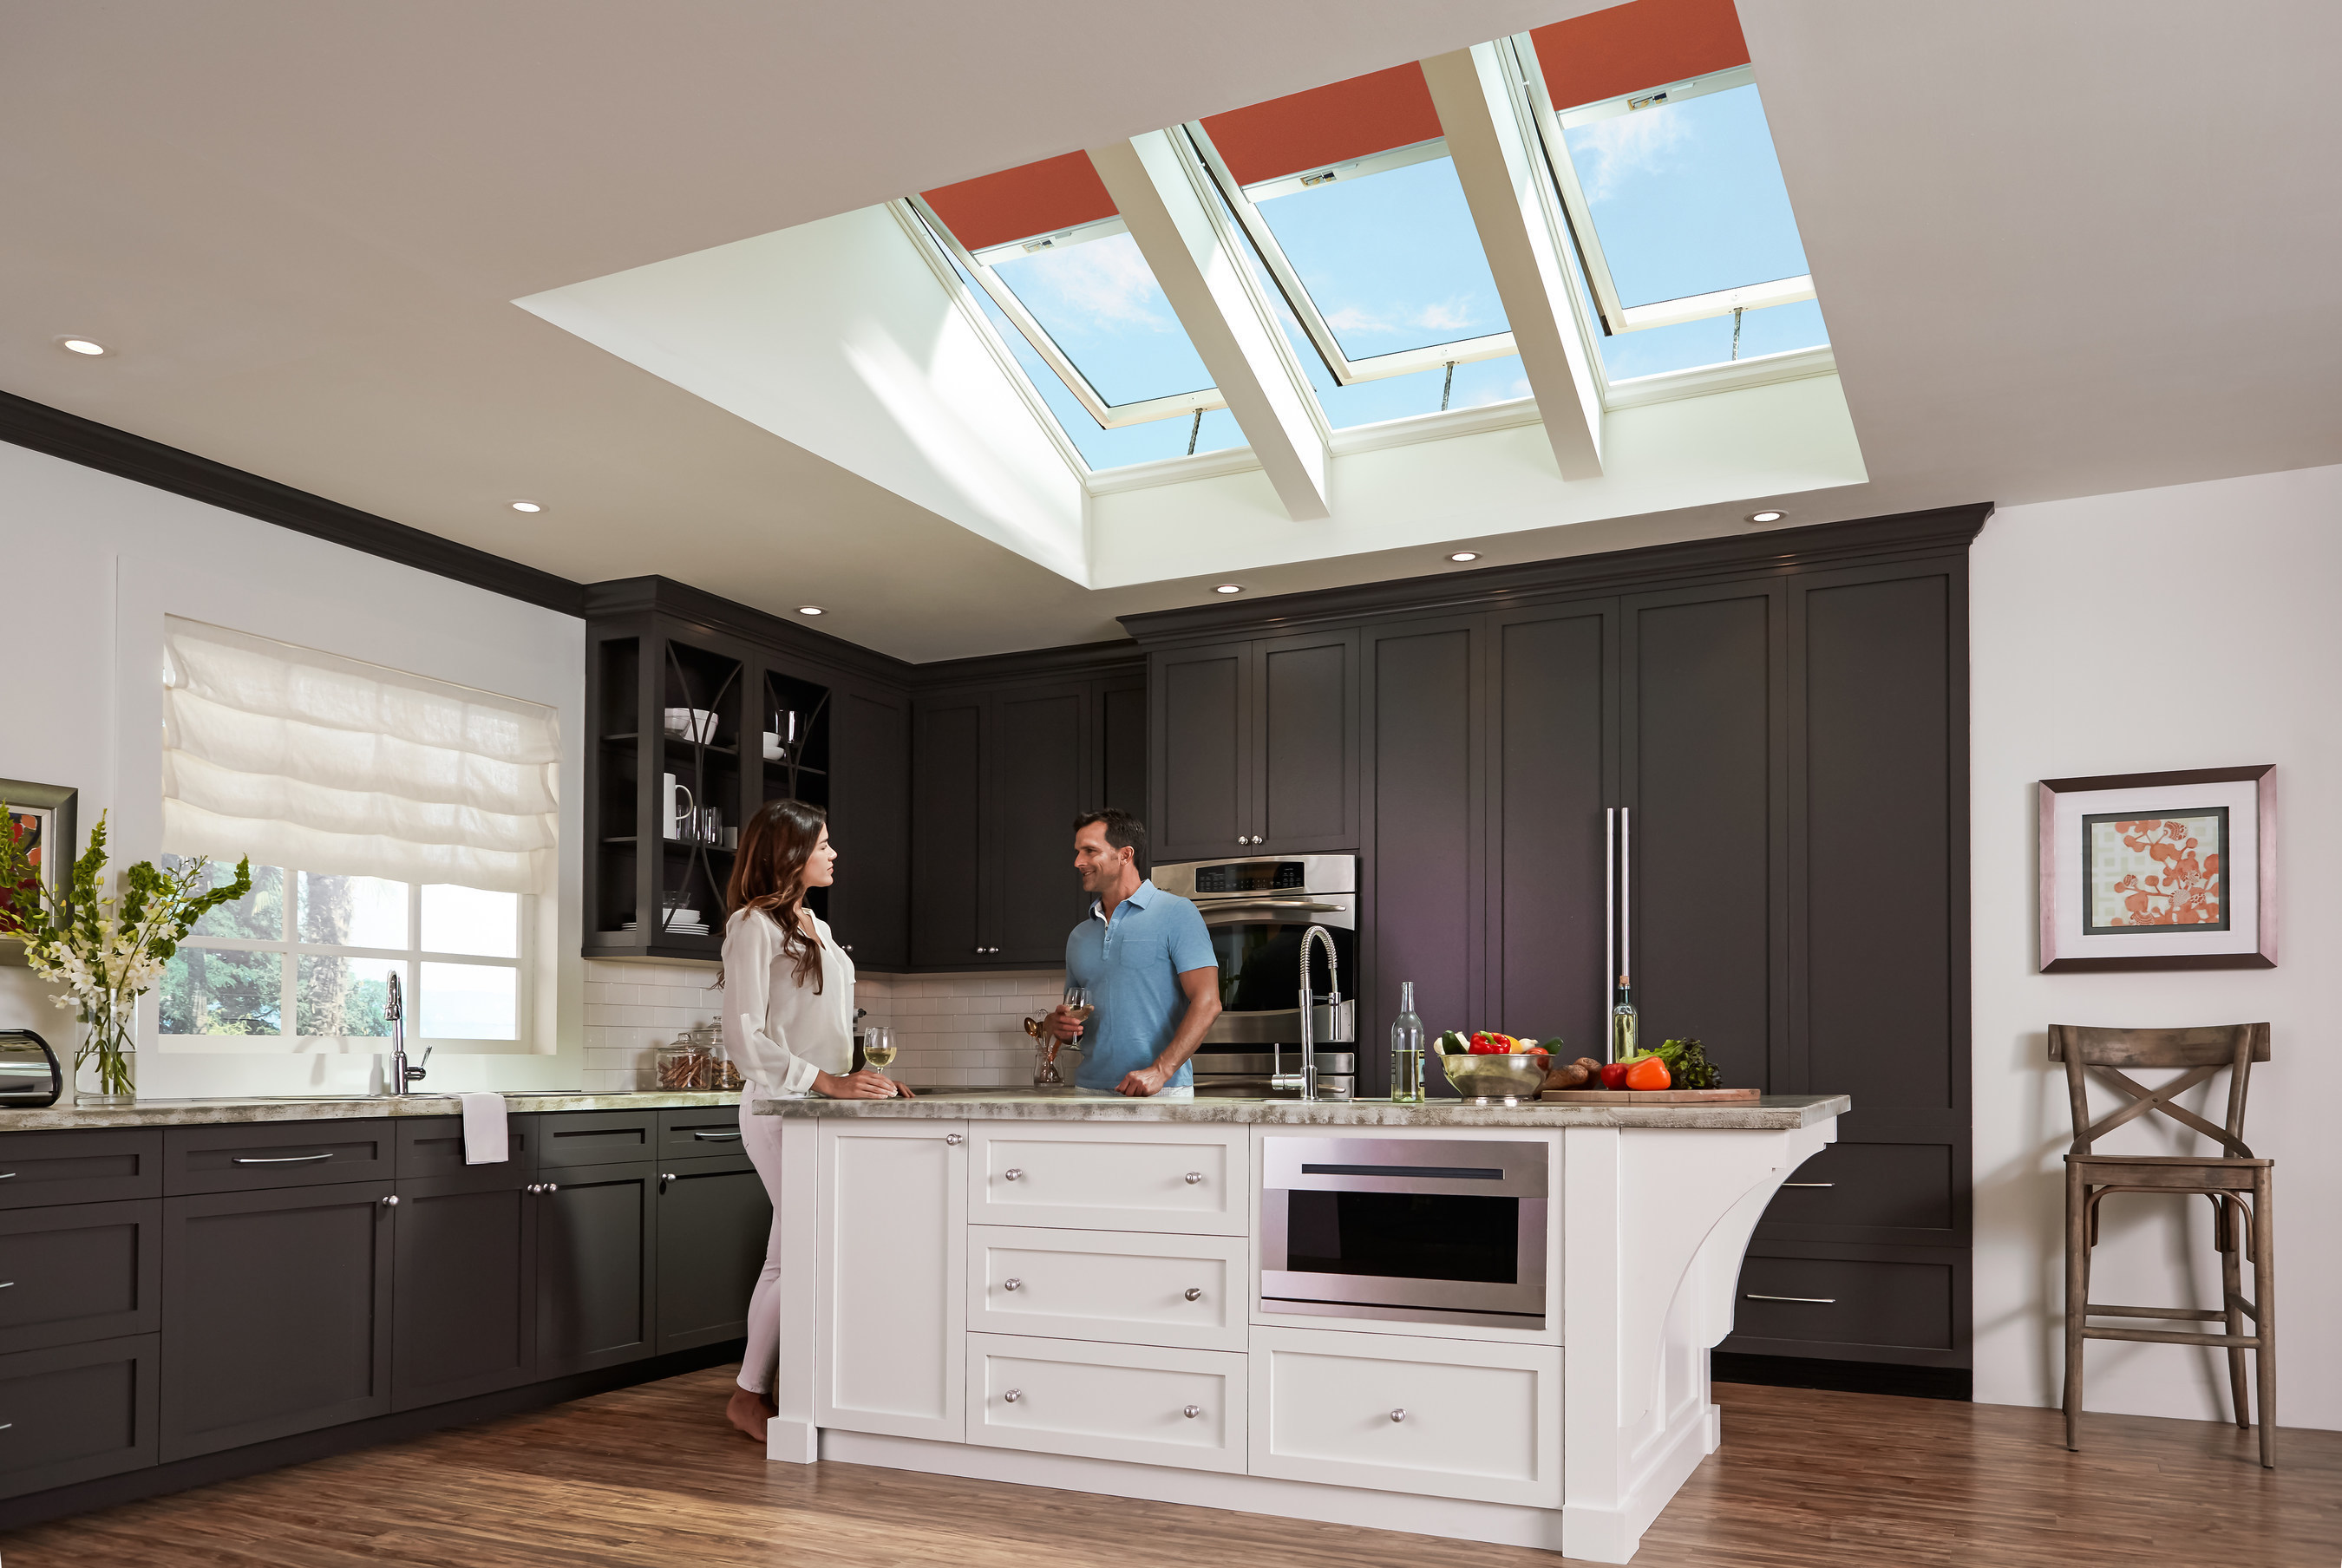 Homeowners Save Now And Later With VELUX Solar Powered Skylights And Blinds